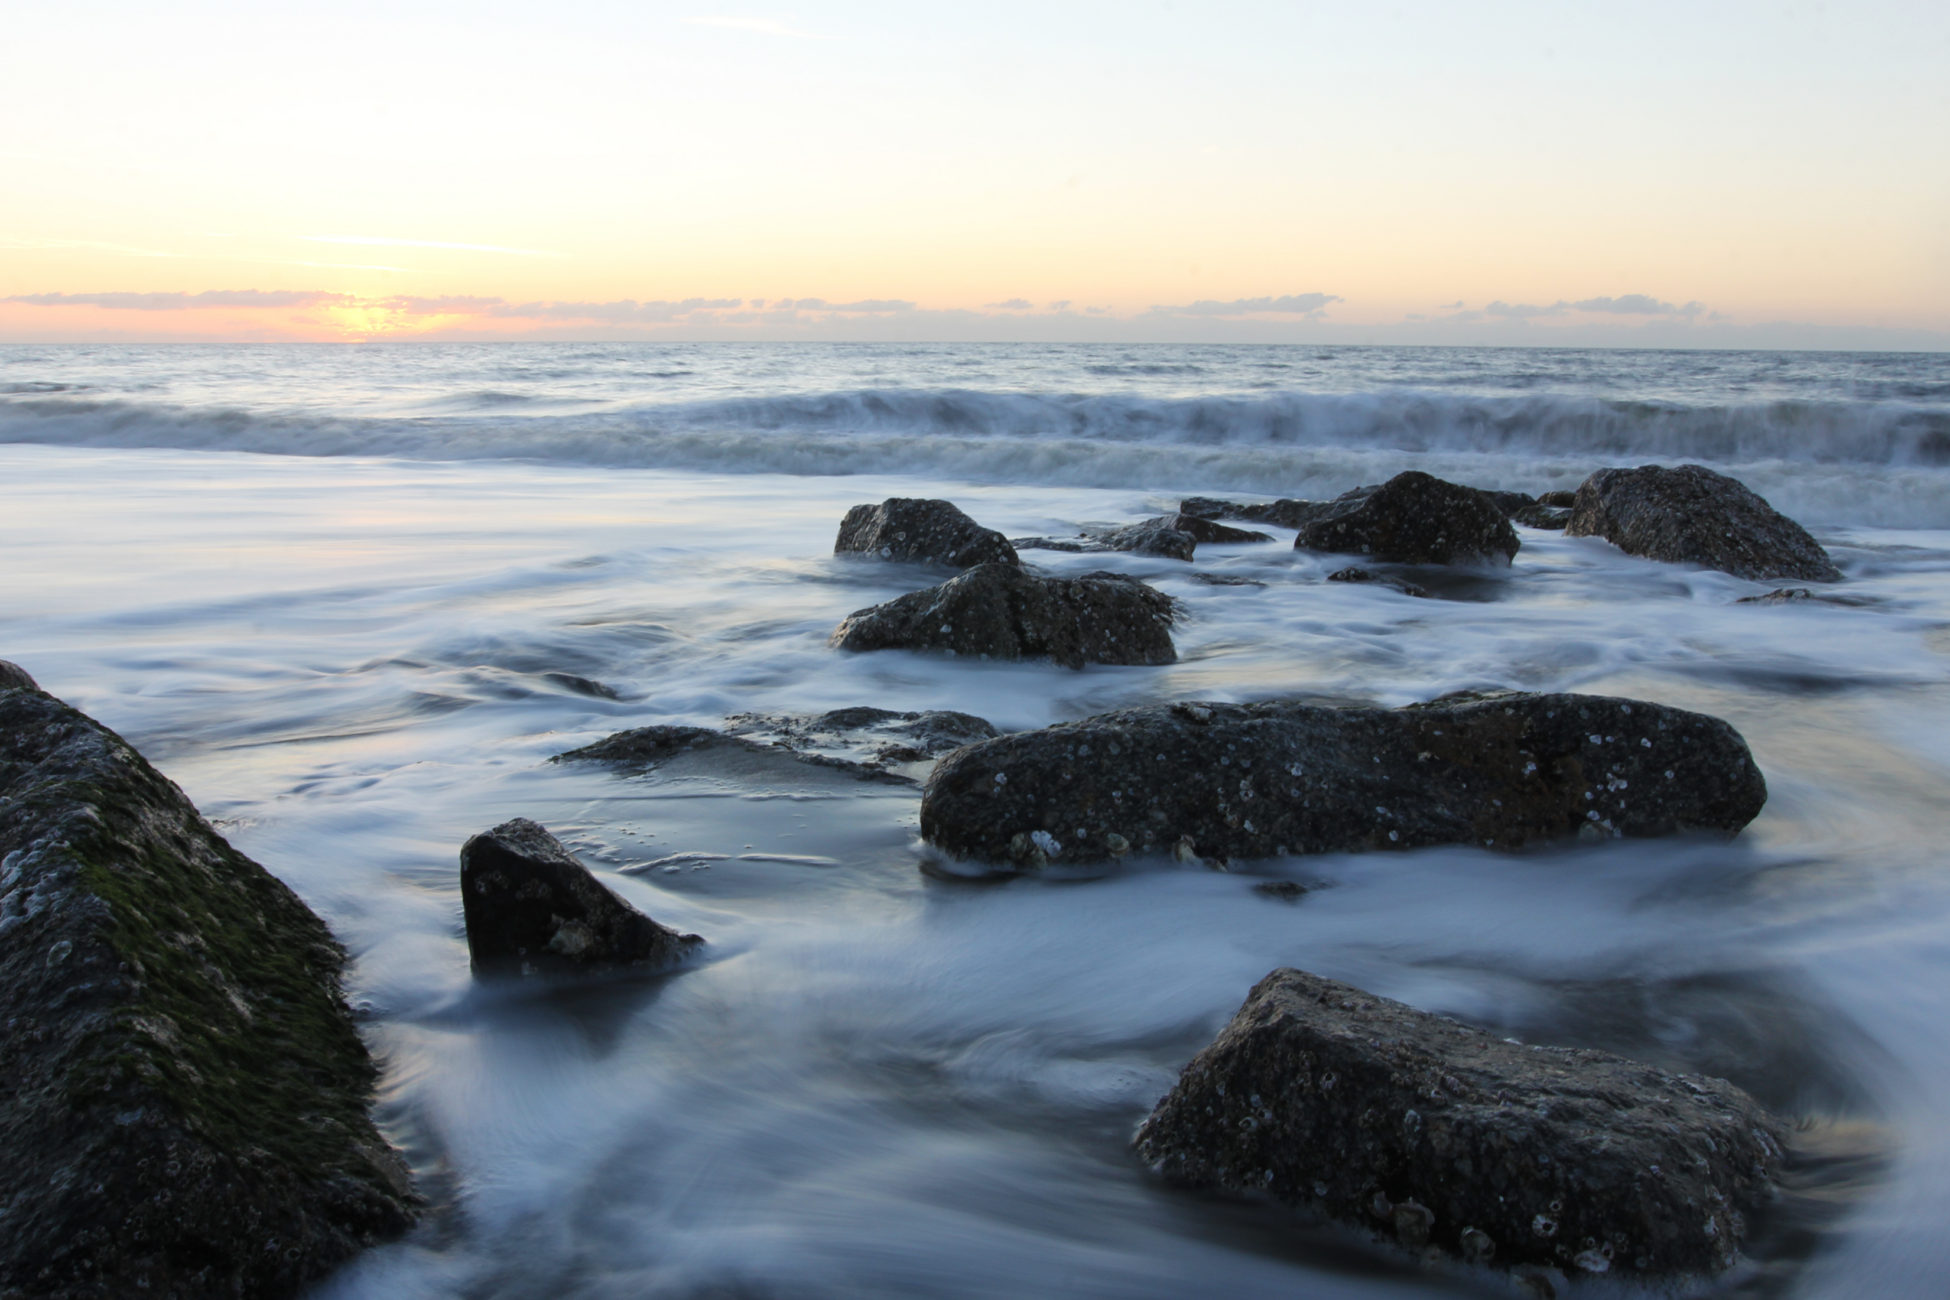 The beach tide starts to recede at the sun rises